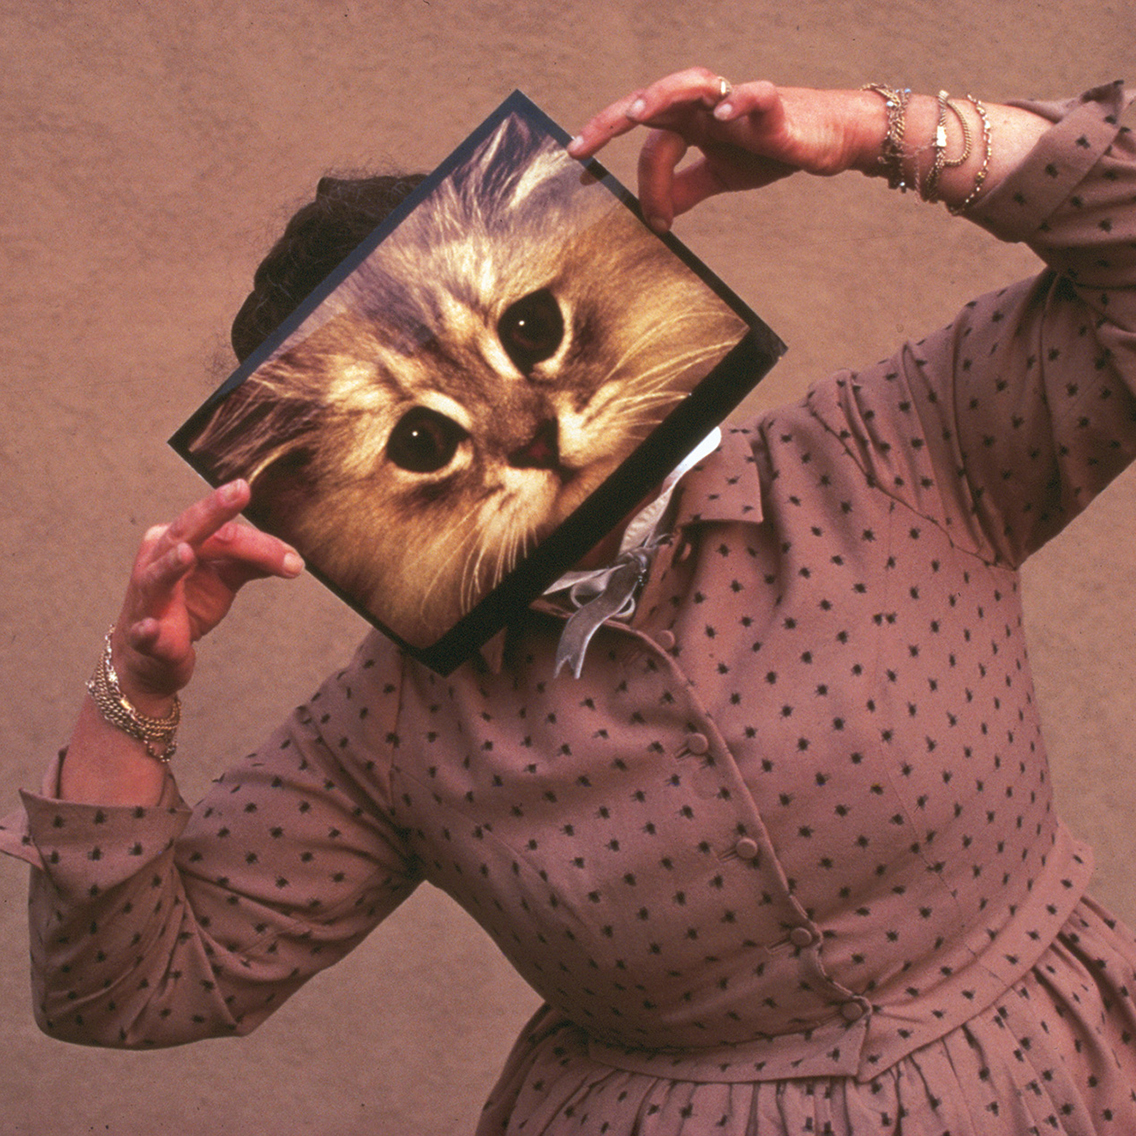 Ray Eames posing with a cat photograph, December 1970 © Eames Office LLC